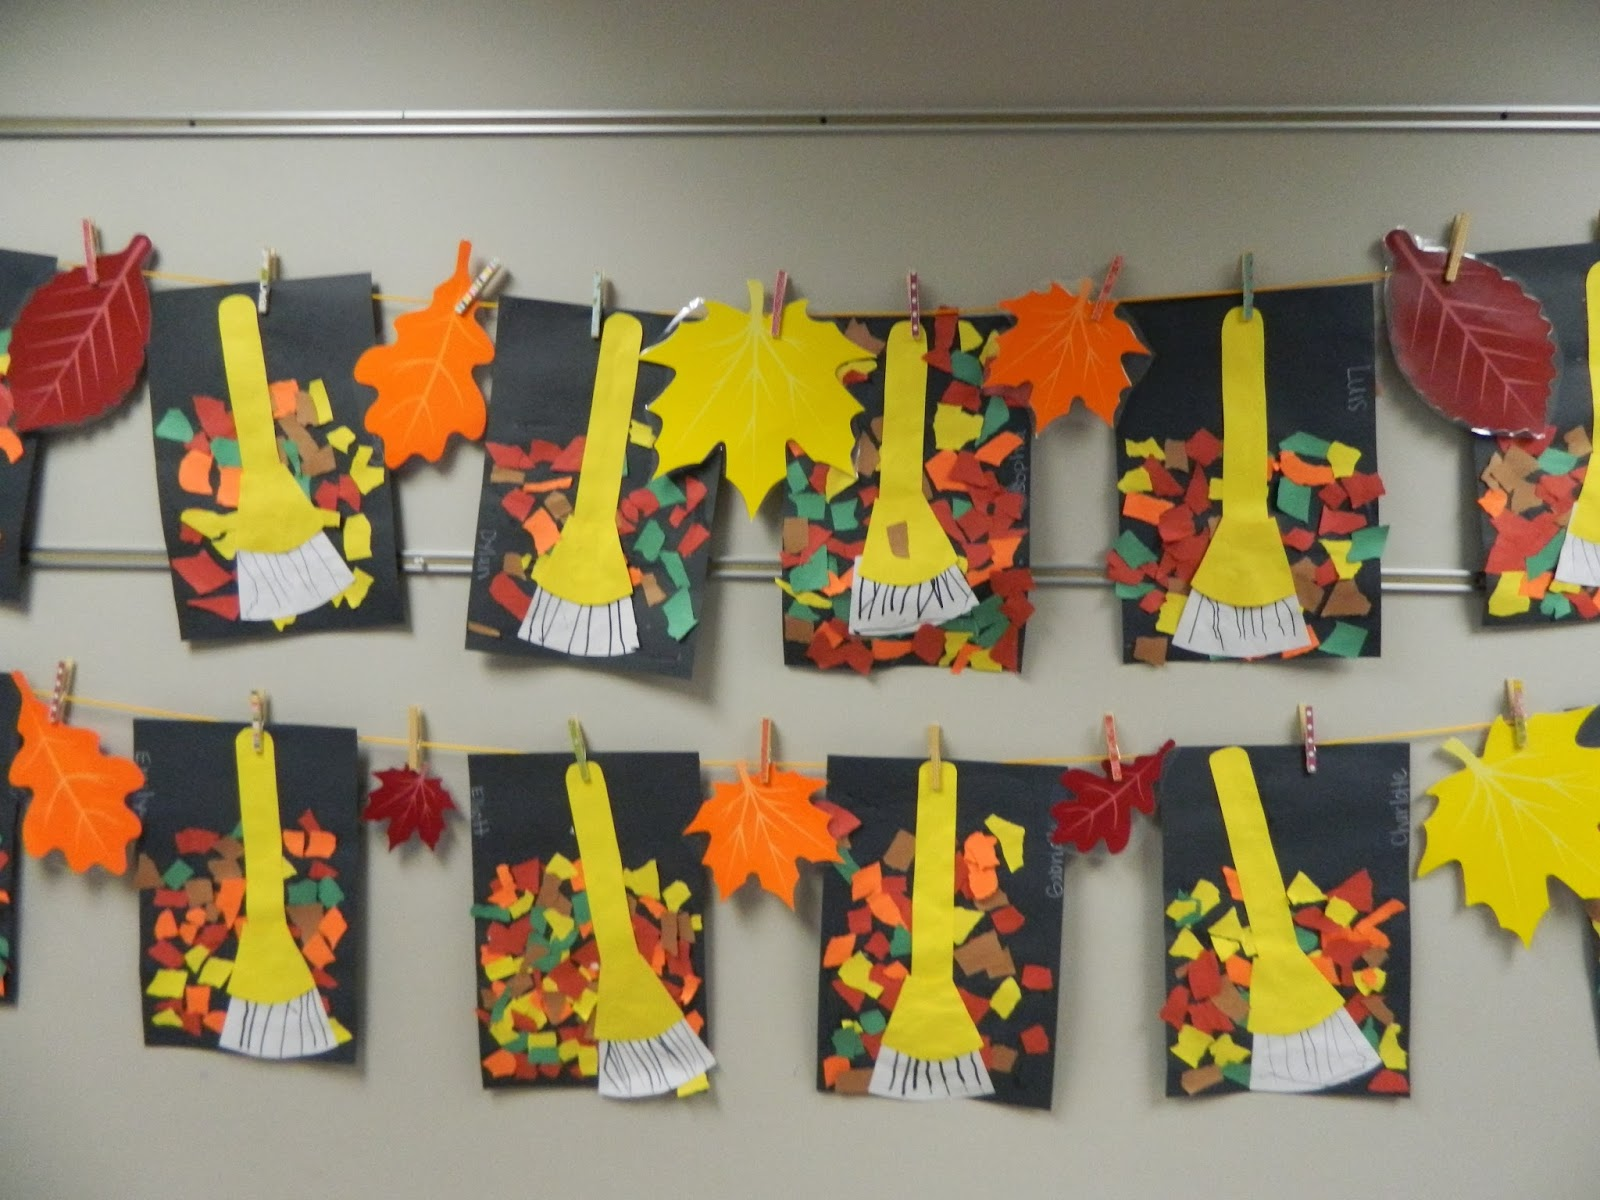 The Vintage Umbrella Rakes And Leaves Art Project